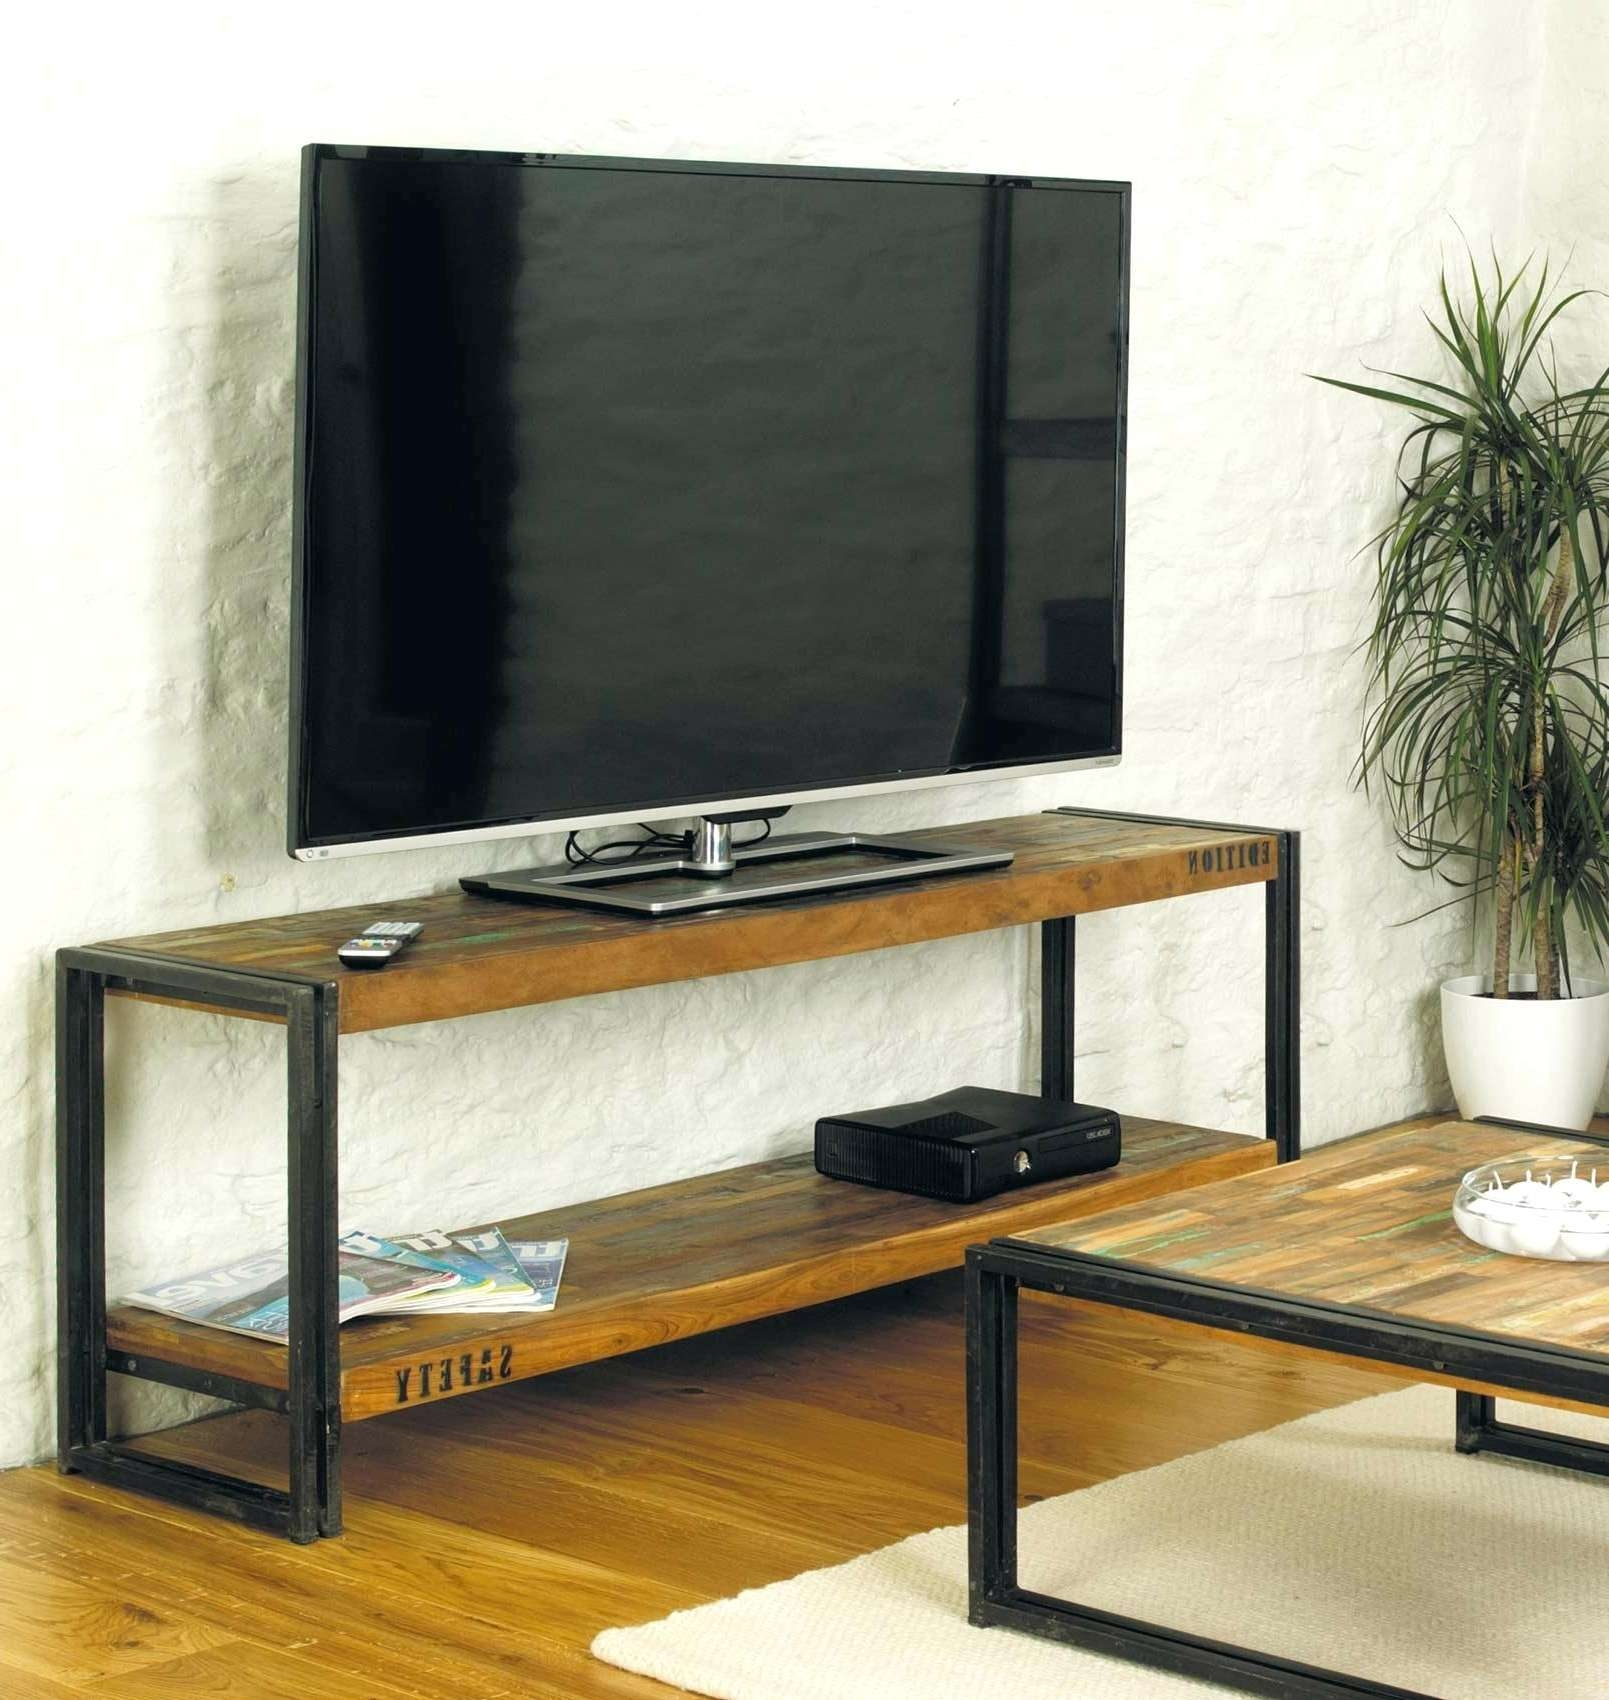 Tv Stand Cover Rustic Industrial Reclaimed Wood Iron Metal Console Throughout Reclaimed Wood And Metal Tv Stands (View 11 of 20)